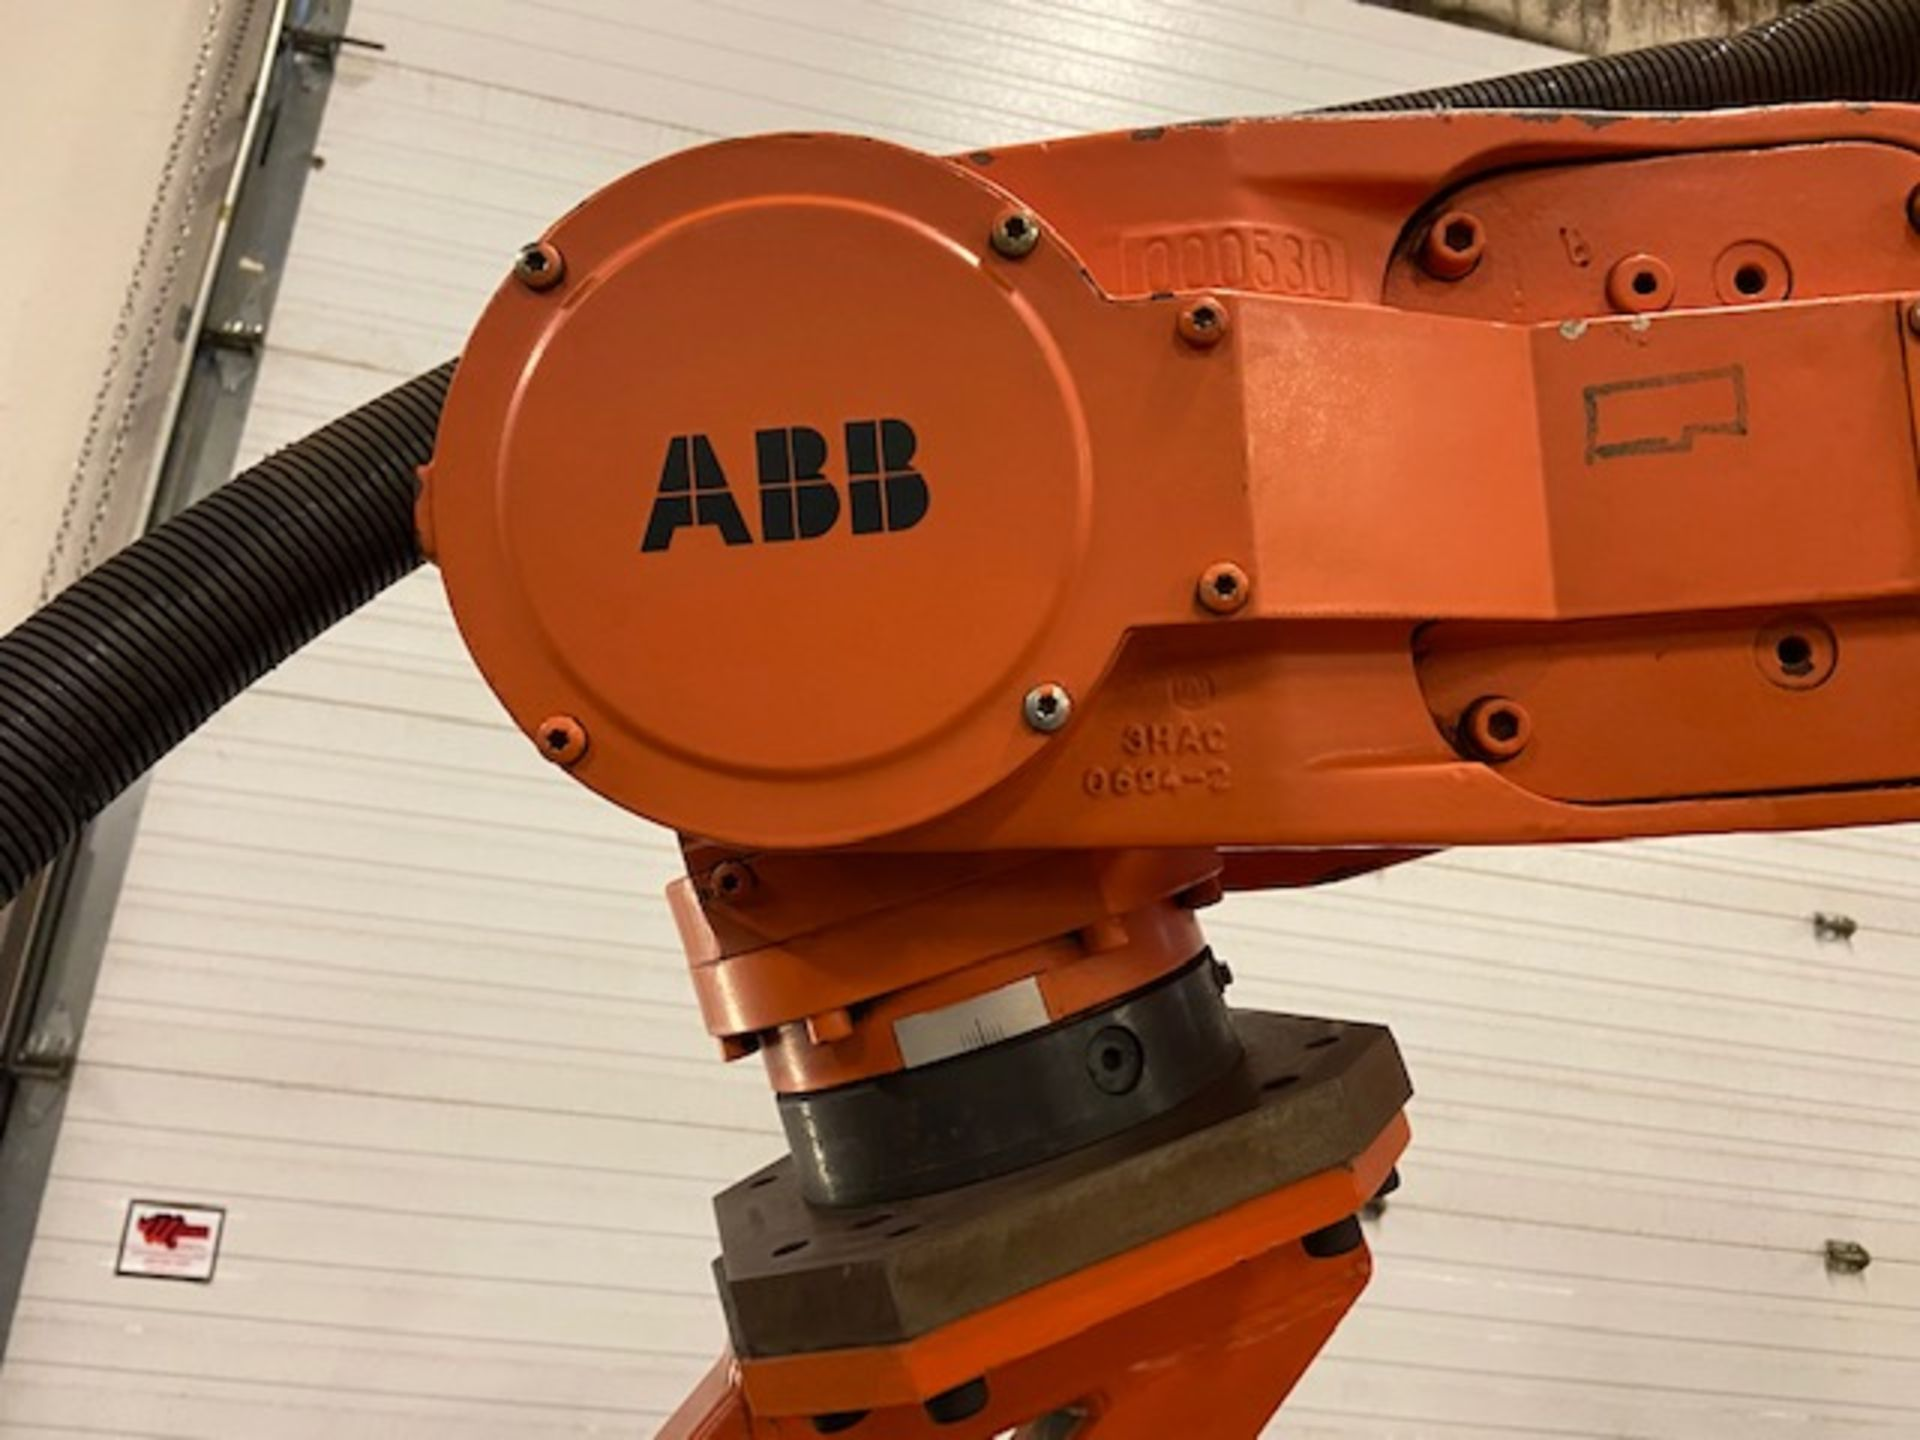 2008 ABB IRB 6400R Robotic Material Handler Package w/ Controller and end of arm tooling - Image 3 of 7